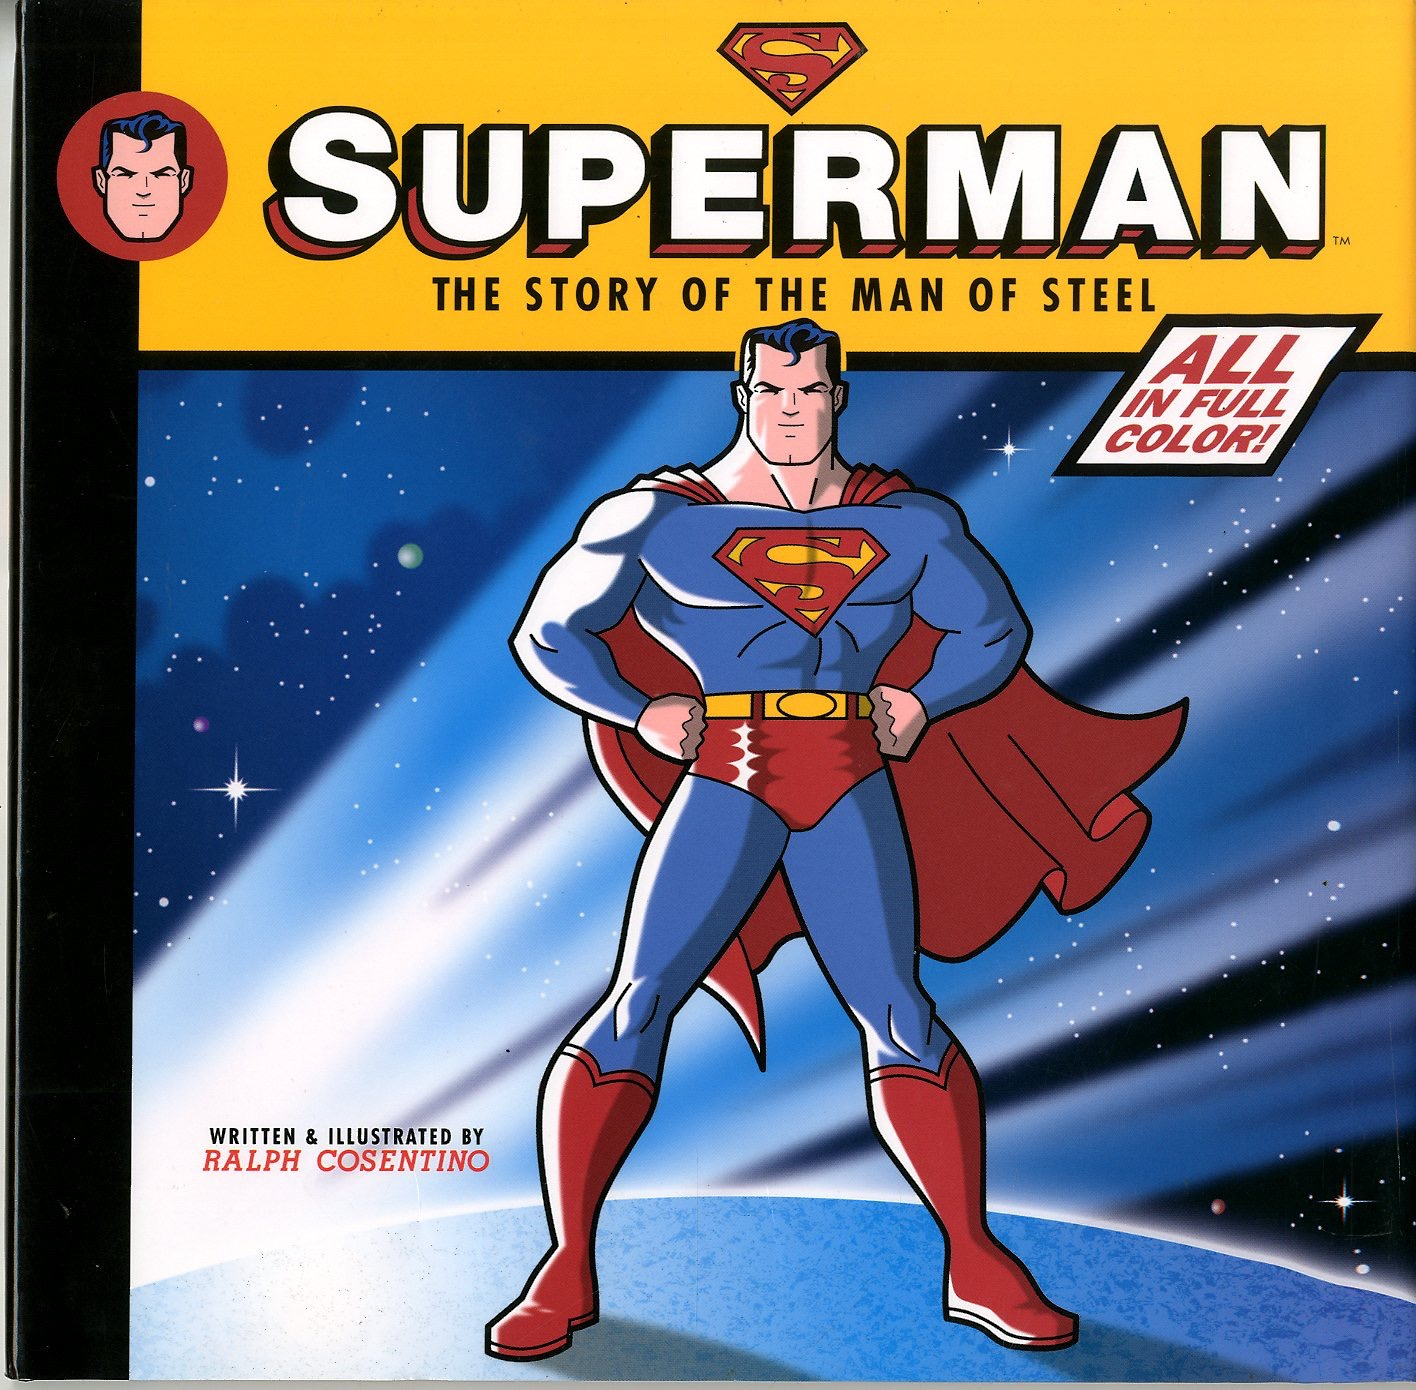 the history of the man of steel